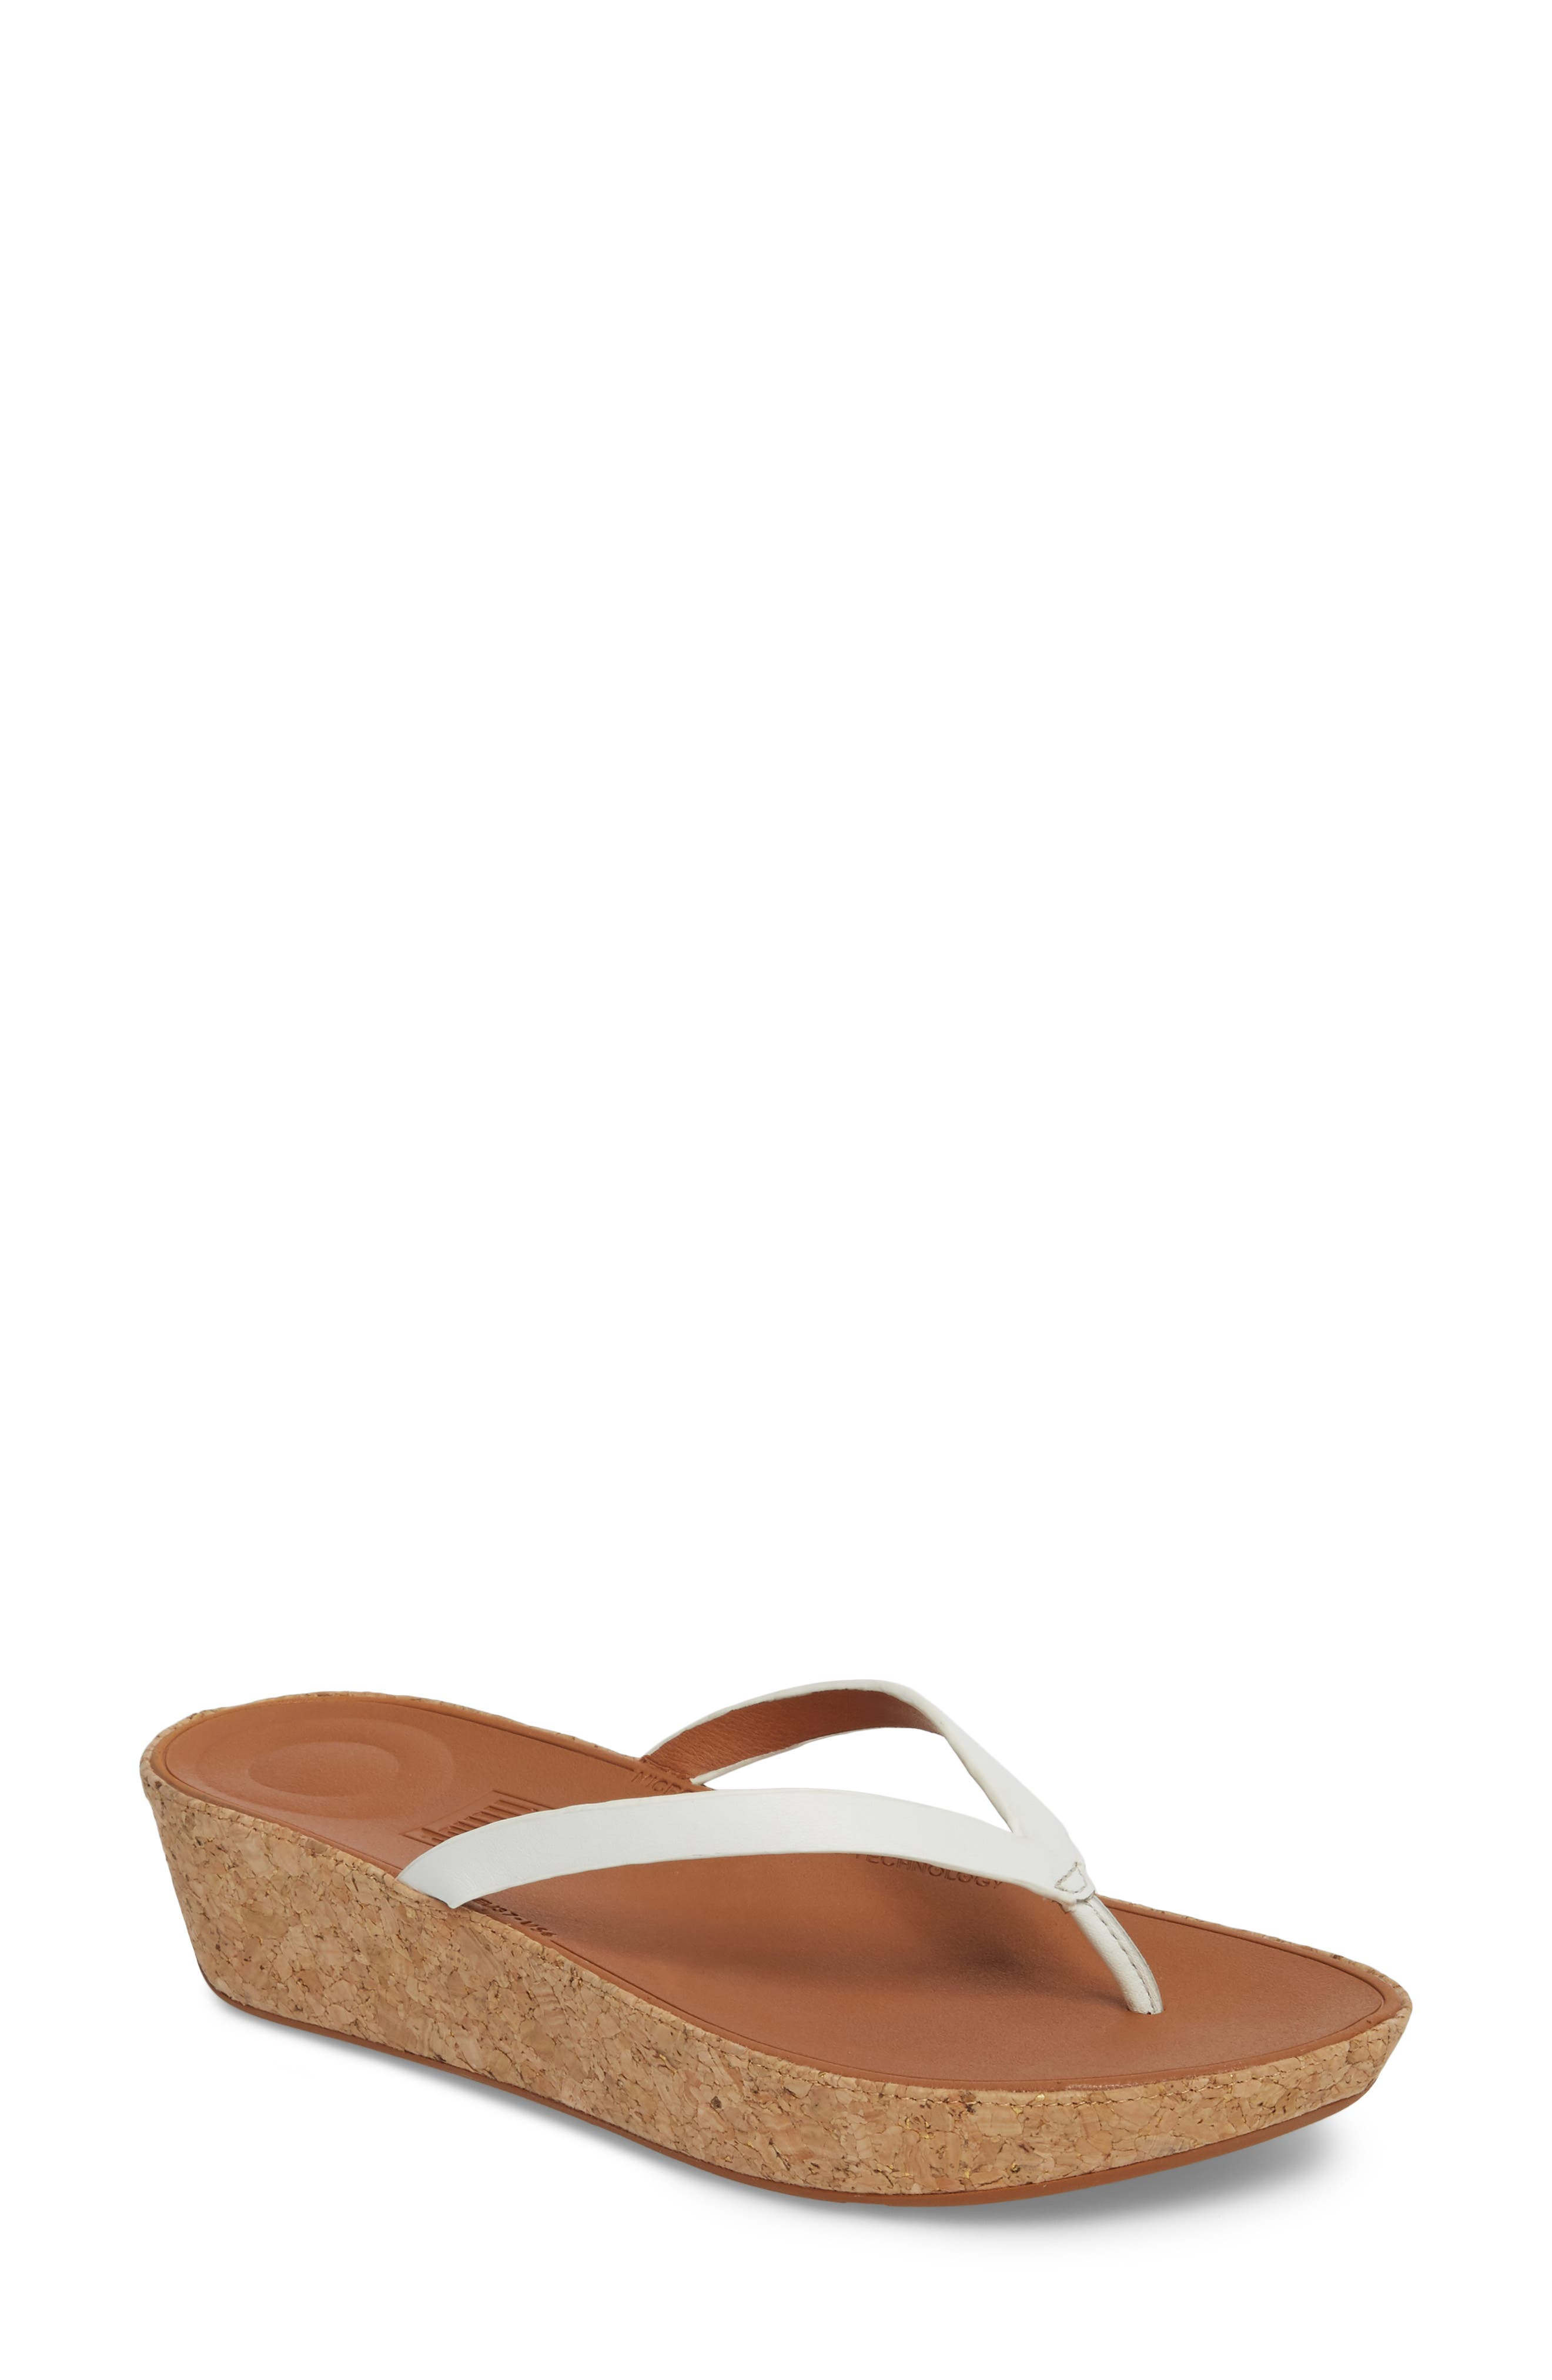 FitFlop Linny Wedge Flip Flop (Women)